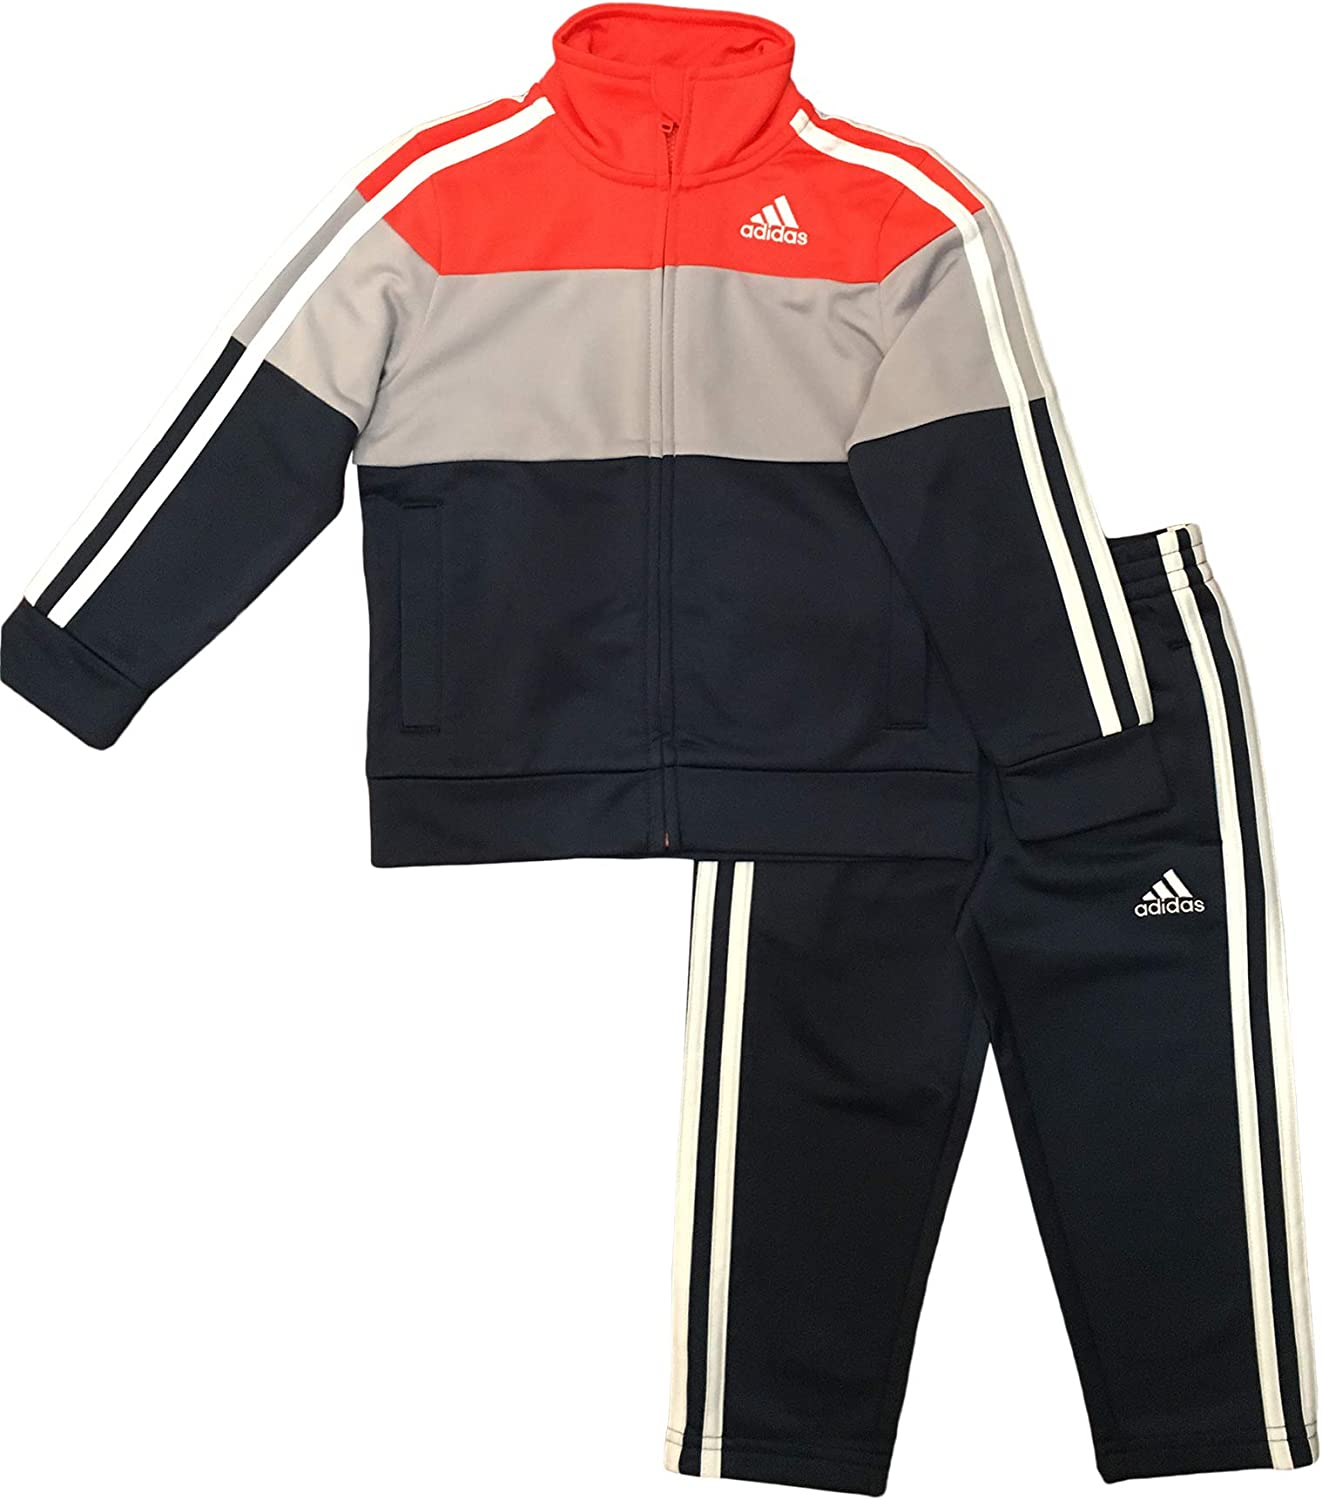 Adidas Boys' Tricot Jacket and Pant Red Lowest Indianapolis Mall price challenge 6 Tracksuit Set Orange